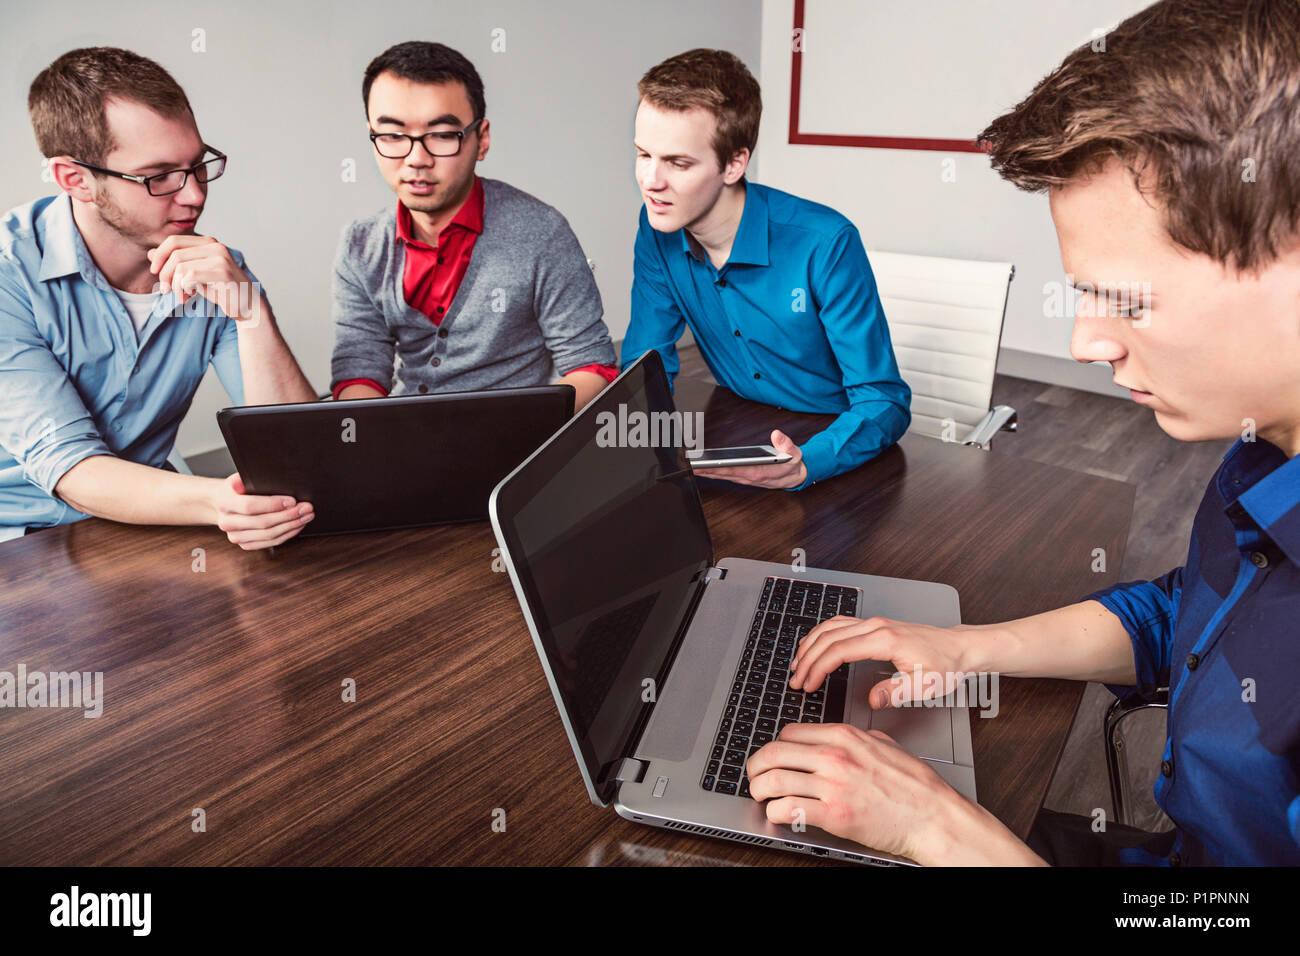 Young men who are millennial business professionals working together in a conference room in a high tech modern business - Stock Image